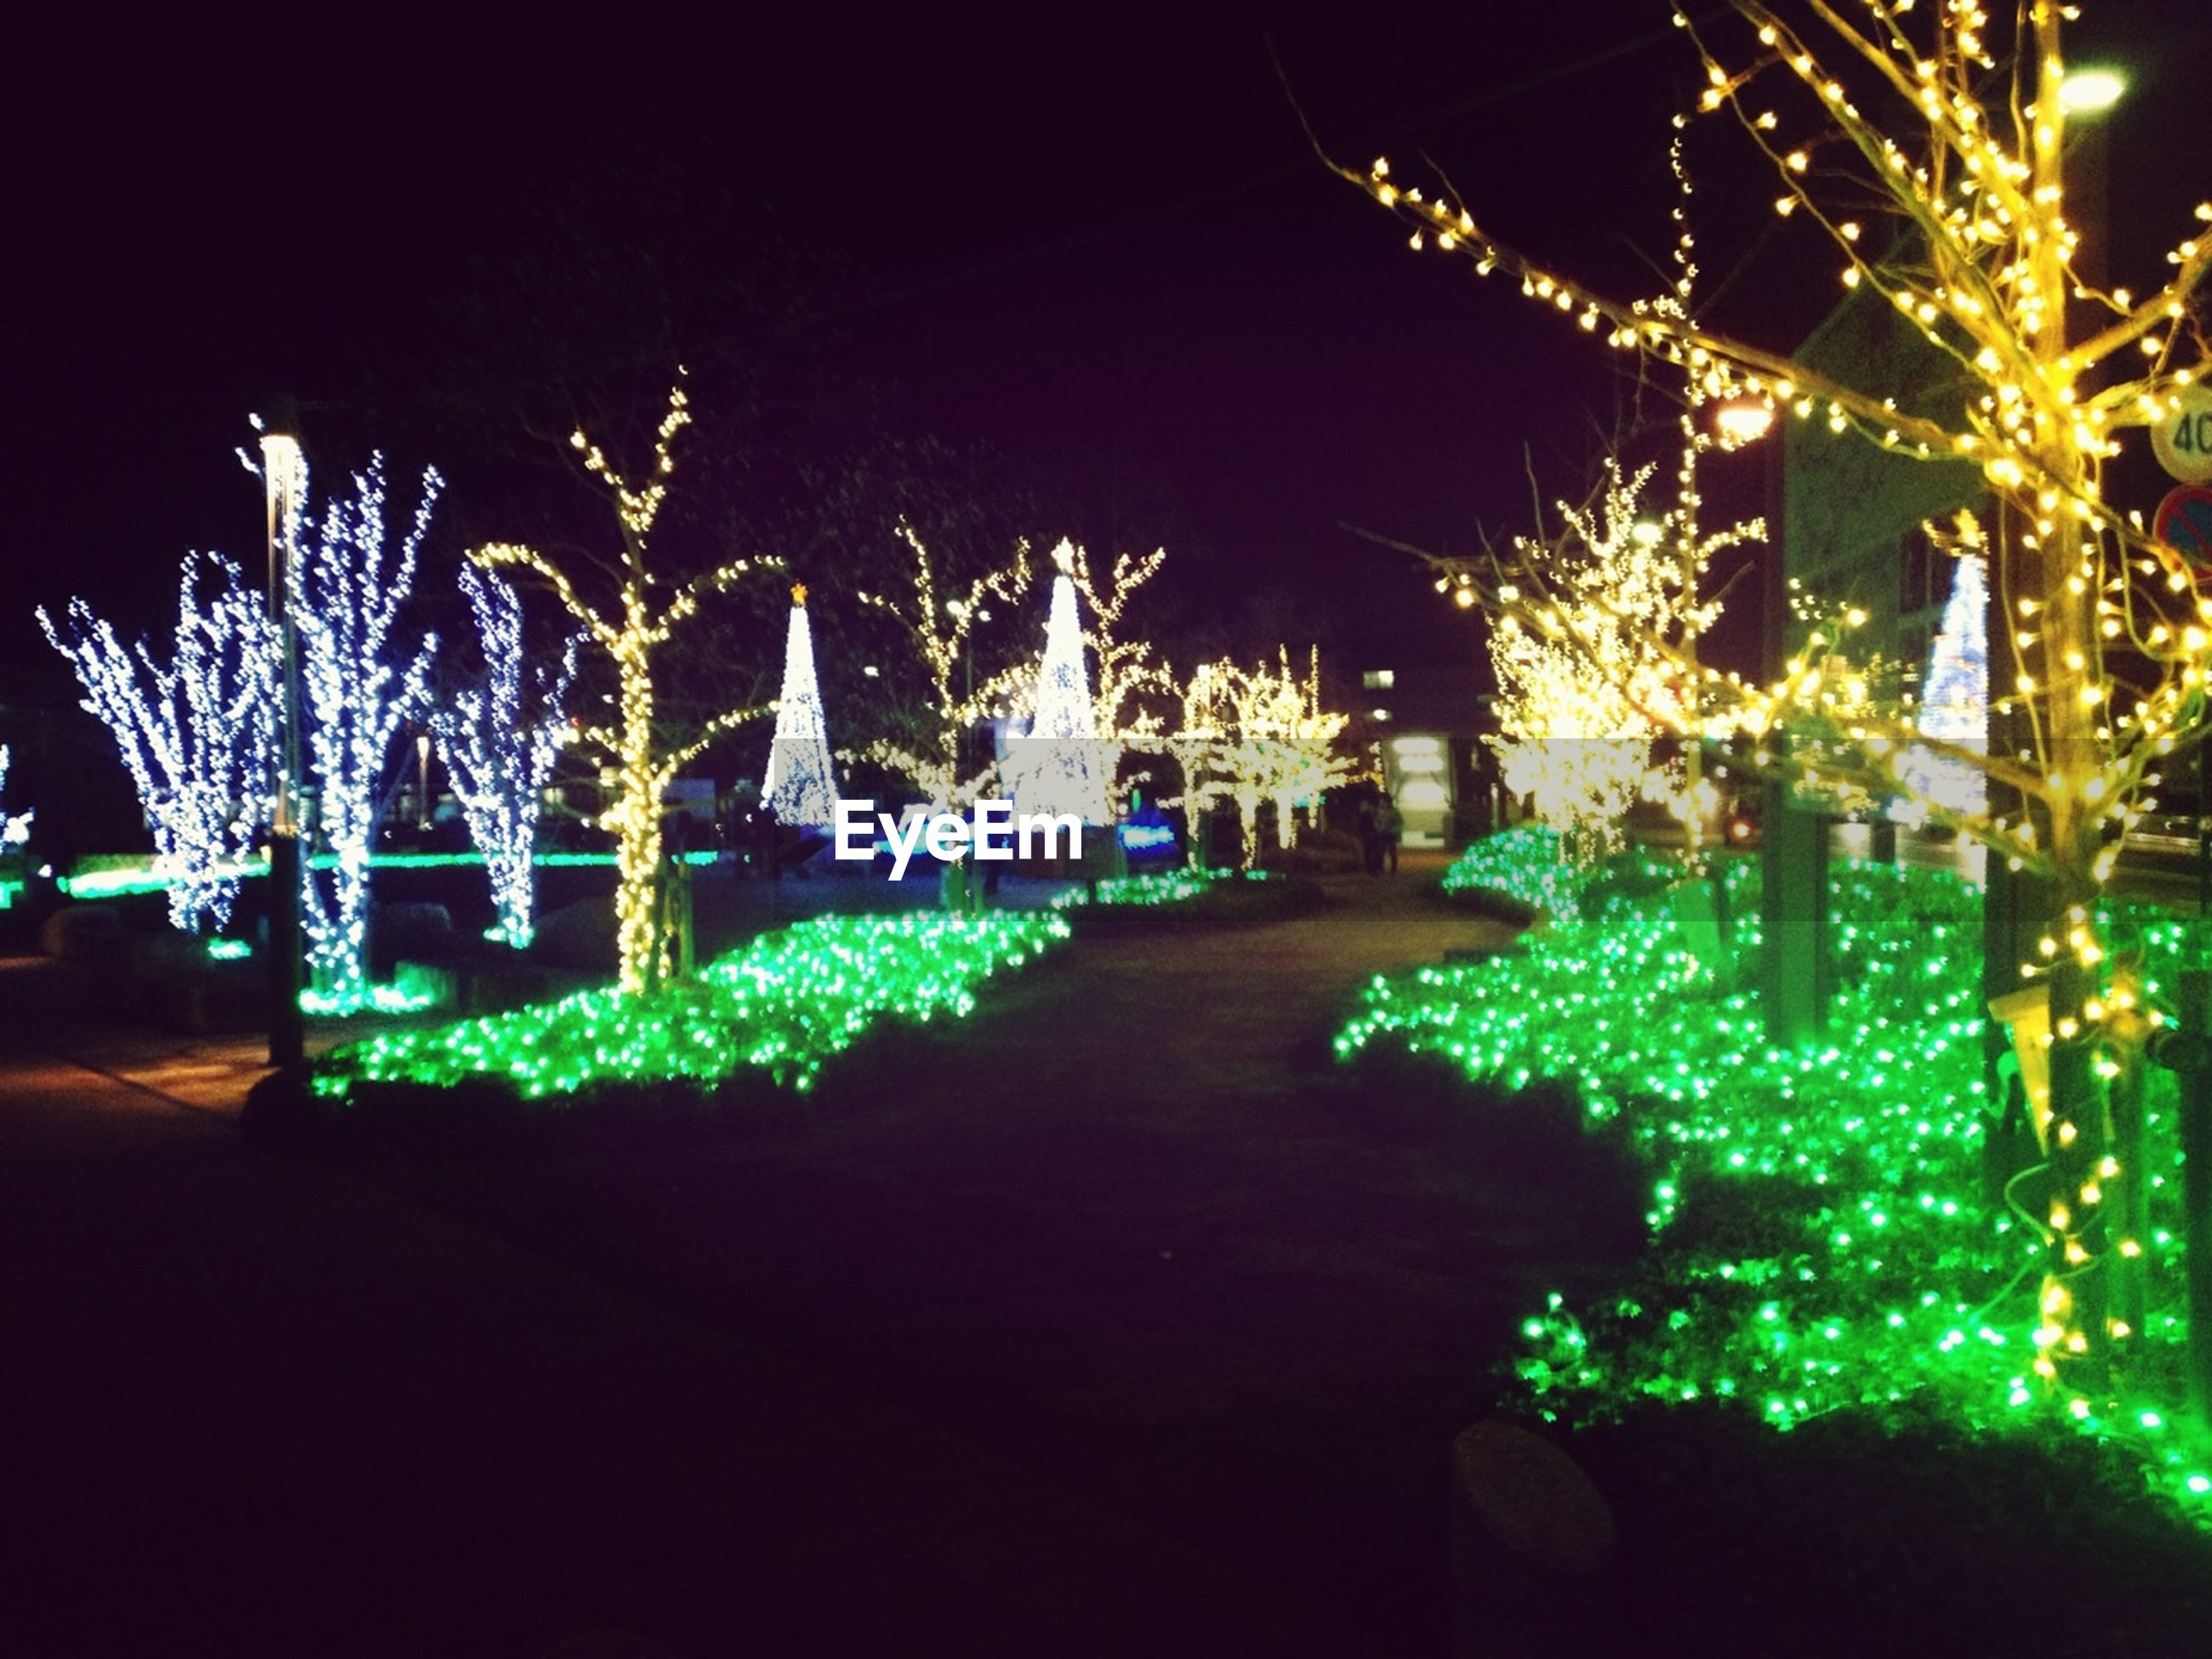 night, illuminated, lighting equipment, tree, light - natural phenomenon, outdoors, decoration, long exposure, glowing, park - man made space, celebration, dark, built structure, building exterior, green color, incidental people, arts culture and entertainment, plant, growth, motion